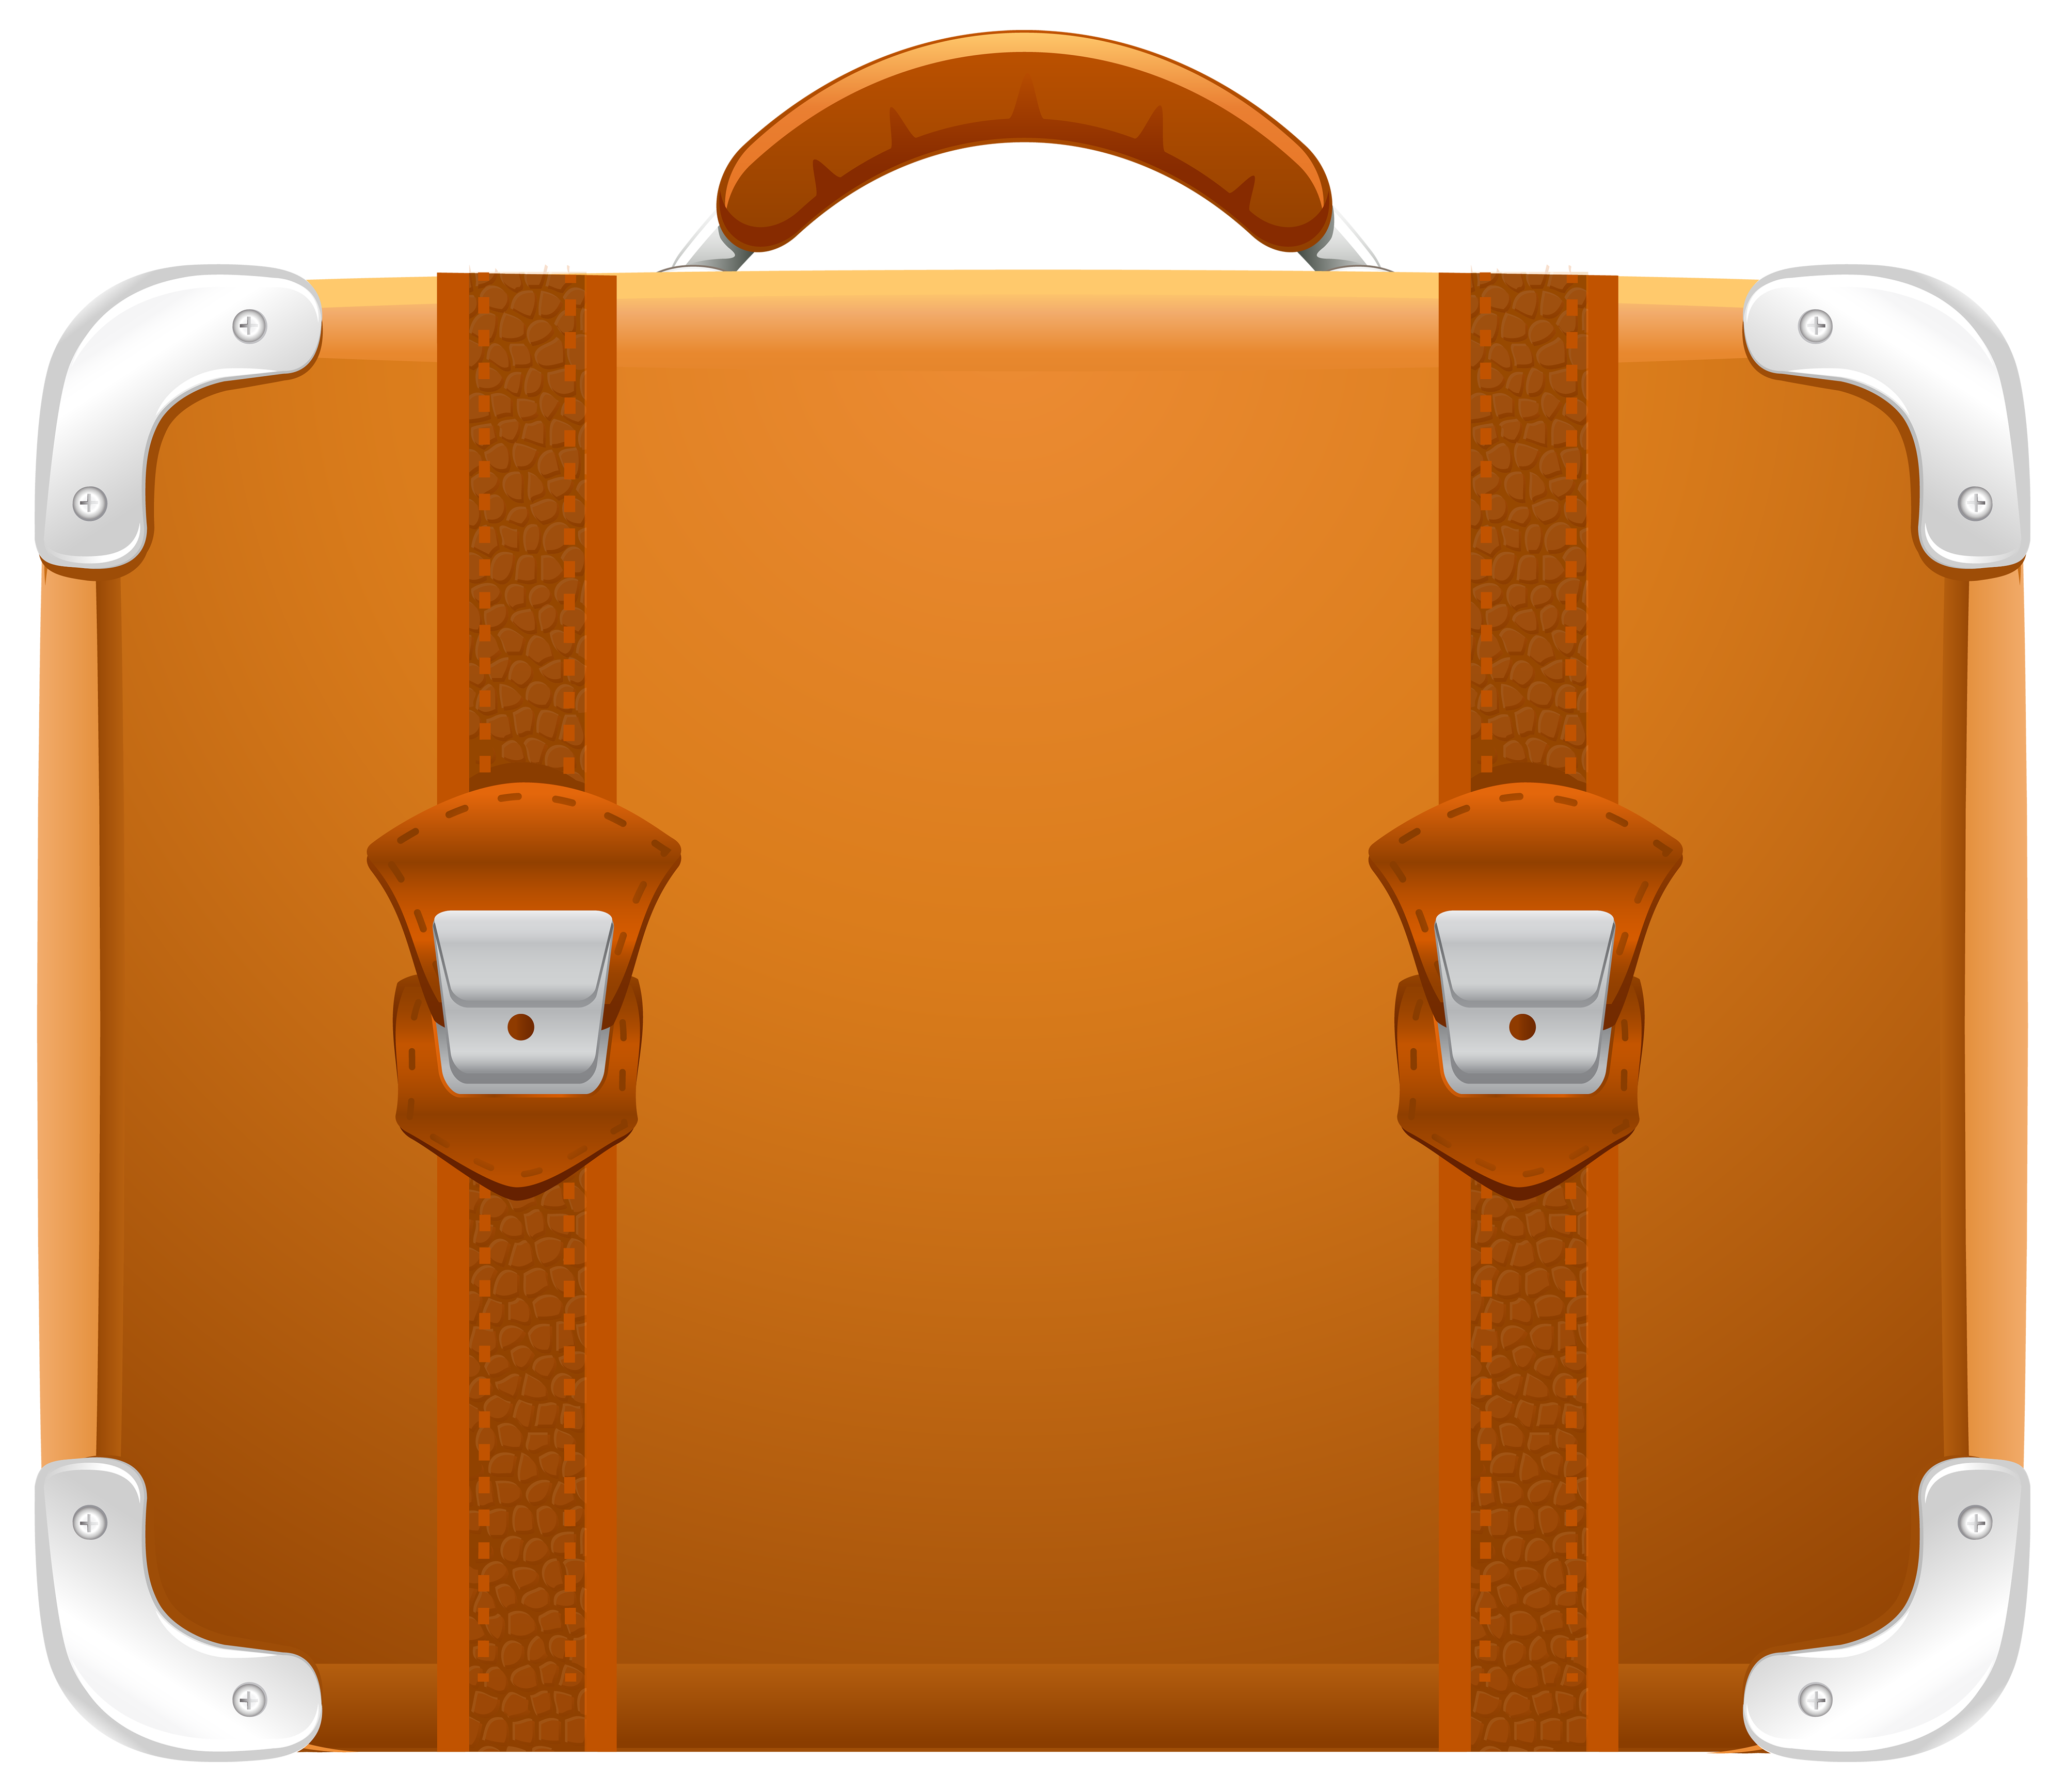 png free download Png image gallery yopriceville. Suitcase clipart